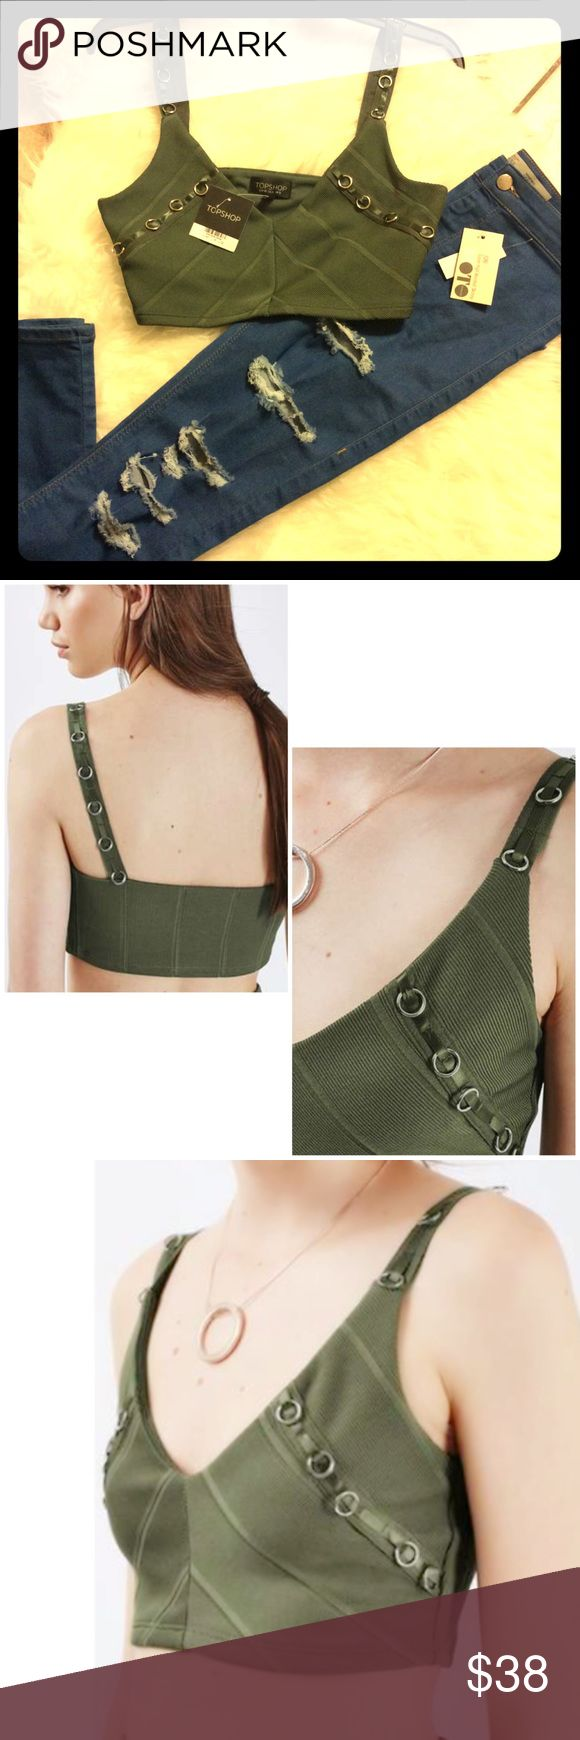 TopShop Brit Bandage Crop Tank military Green New w Tags. Punk Rock Ring Tank. Military Green Bandage crop top. ~Top shown with Joni Extreme High Waist Jeans from TopShop also. Listed separately.  Please take a l👀k!!! 20% discount on two items!     💕☀ Topshop Tops Tank Tops